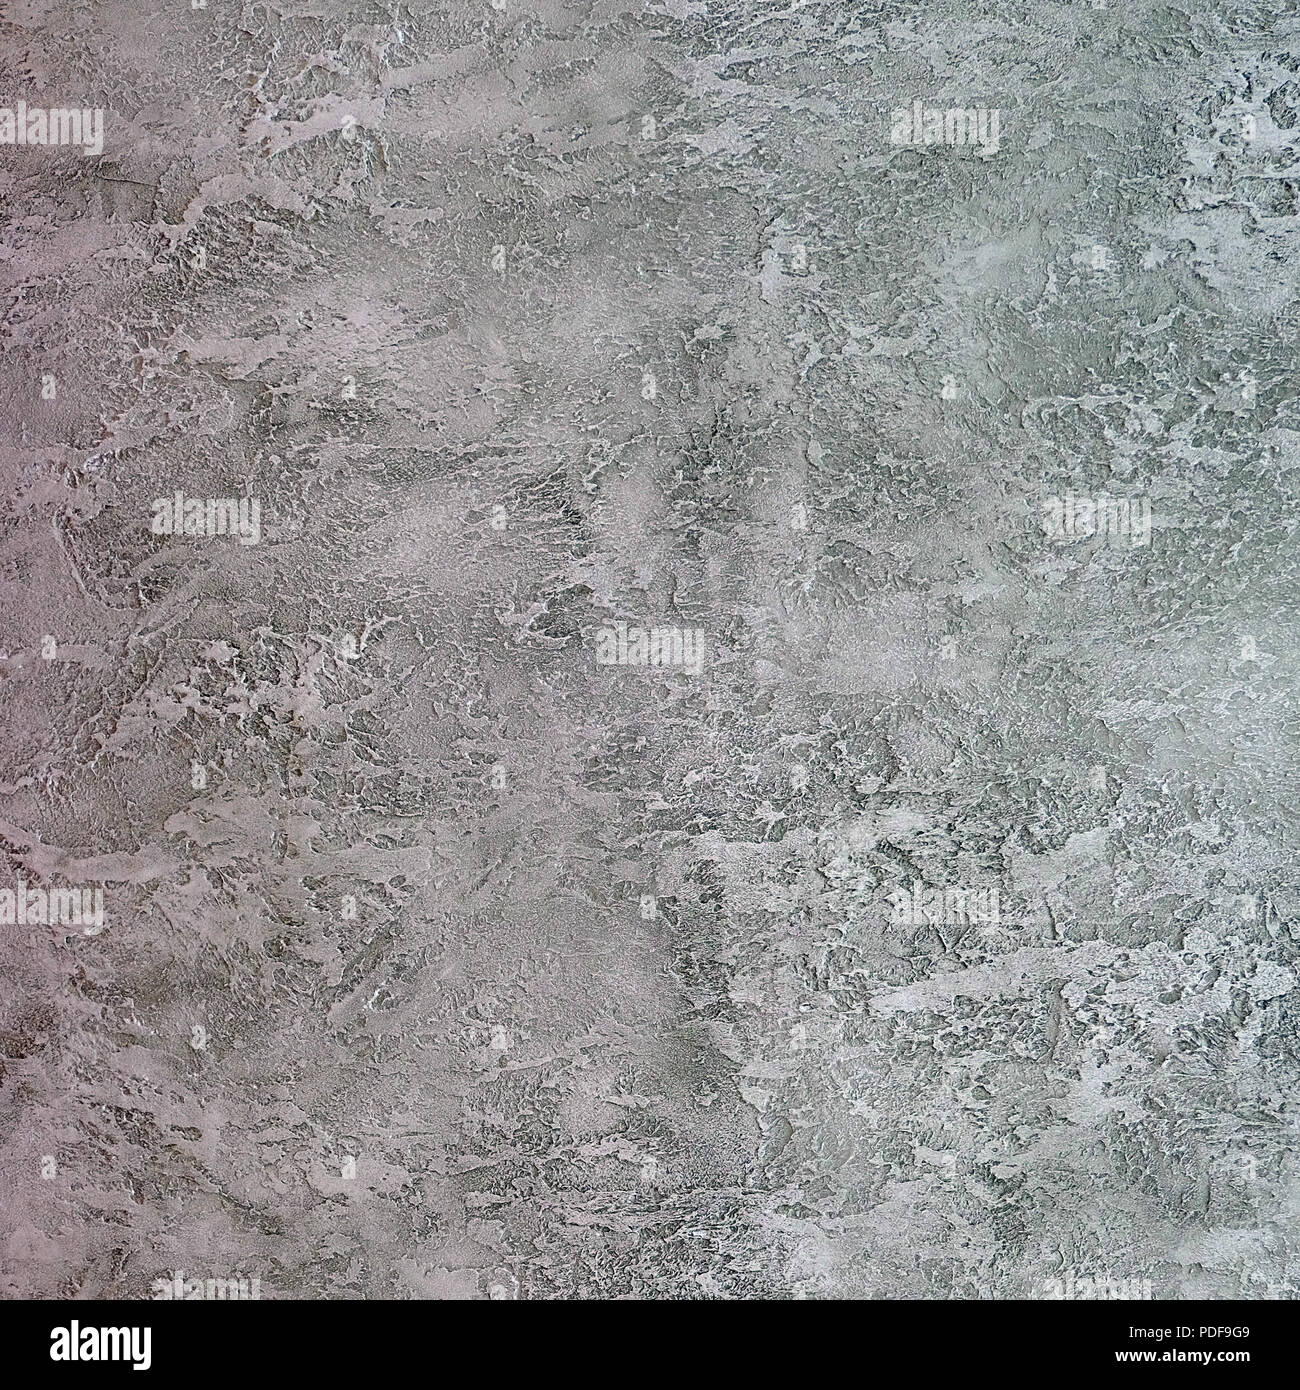 Contrast Between Stone And Plaster Finish: Dramatic Grey Grunge Seamless Stone Texture Venetian